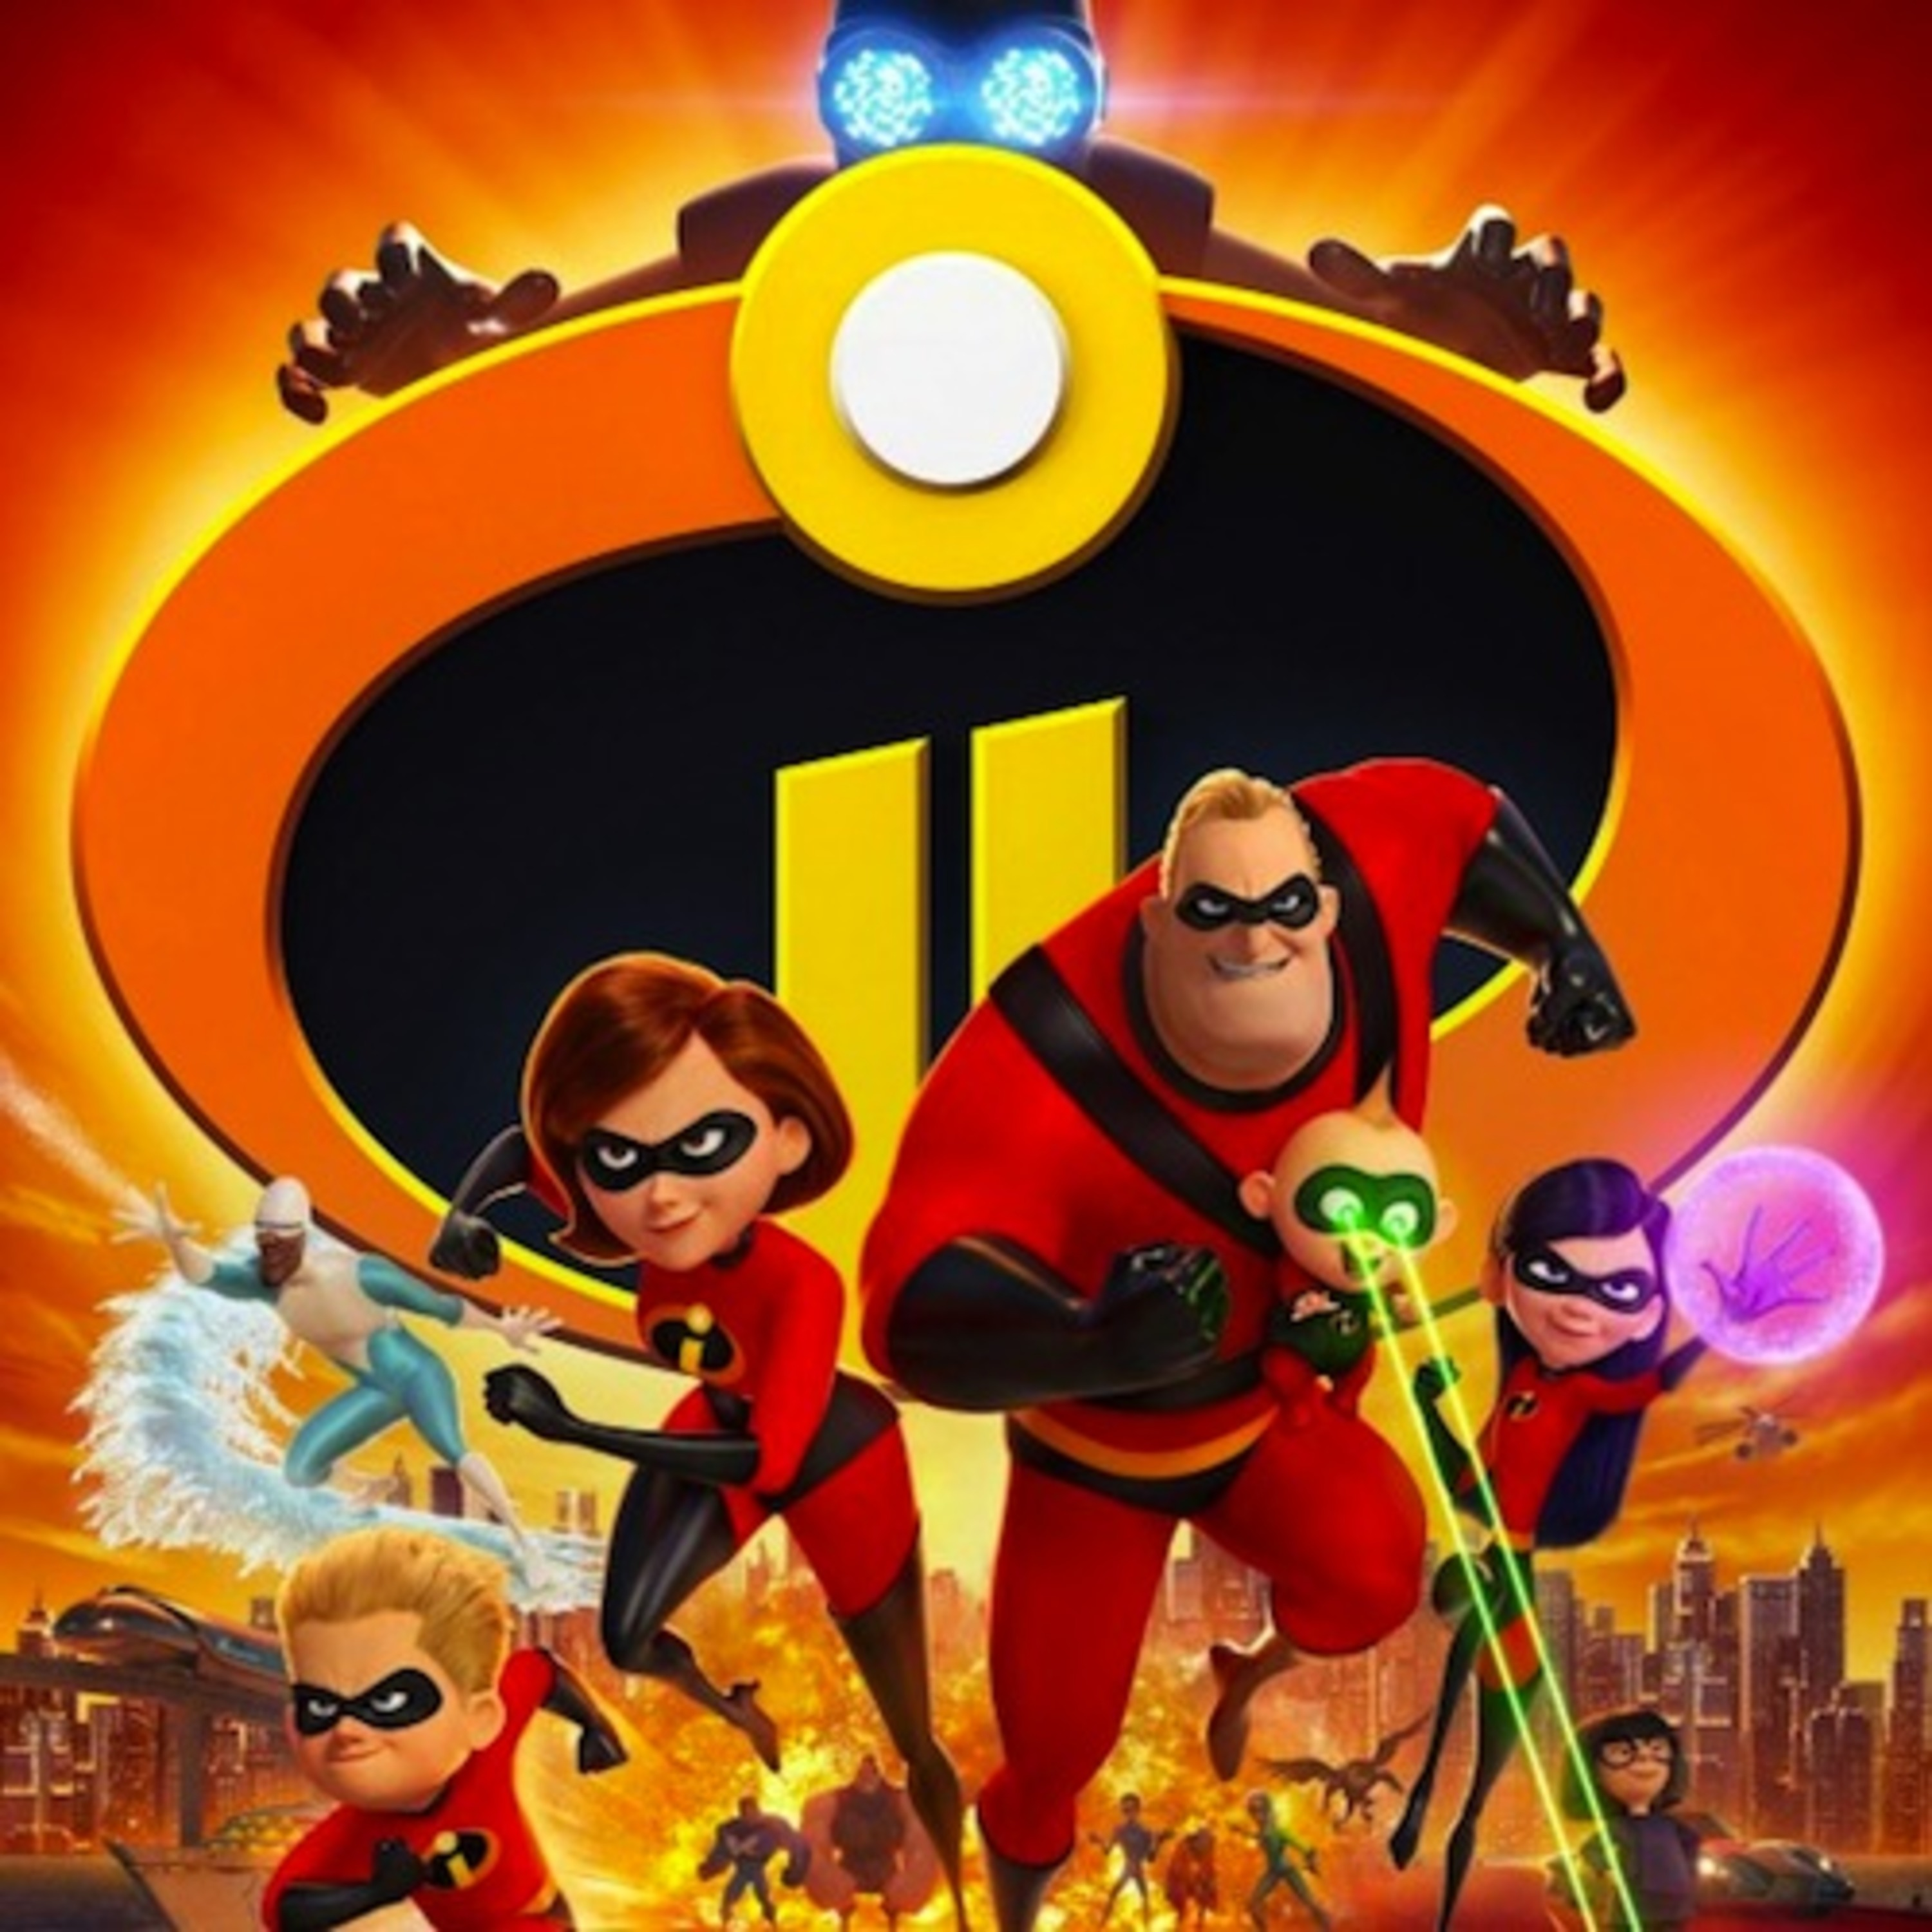 'Incredibles 2' Review - Where Does It Place in Our Pixar Rank?